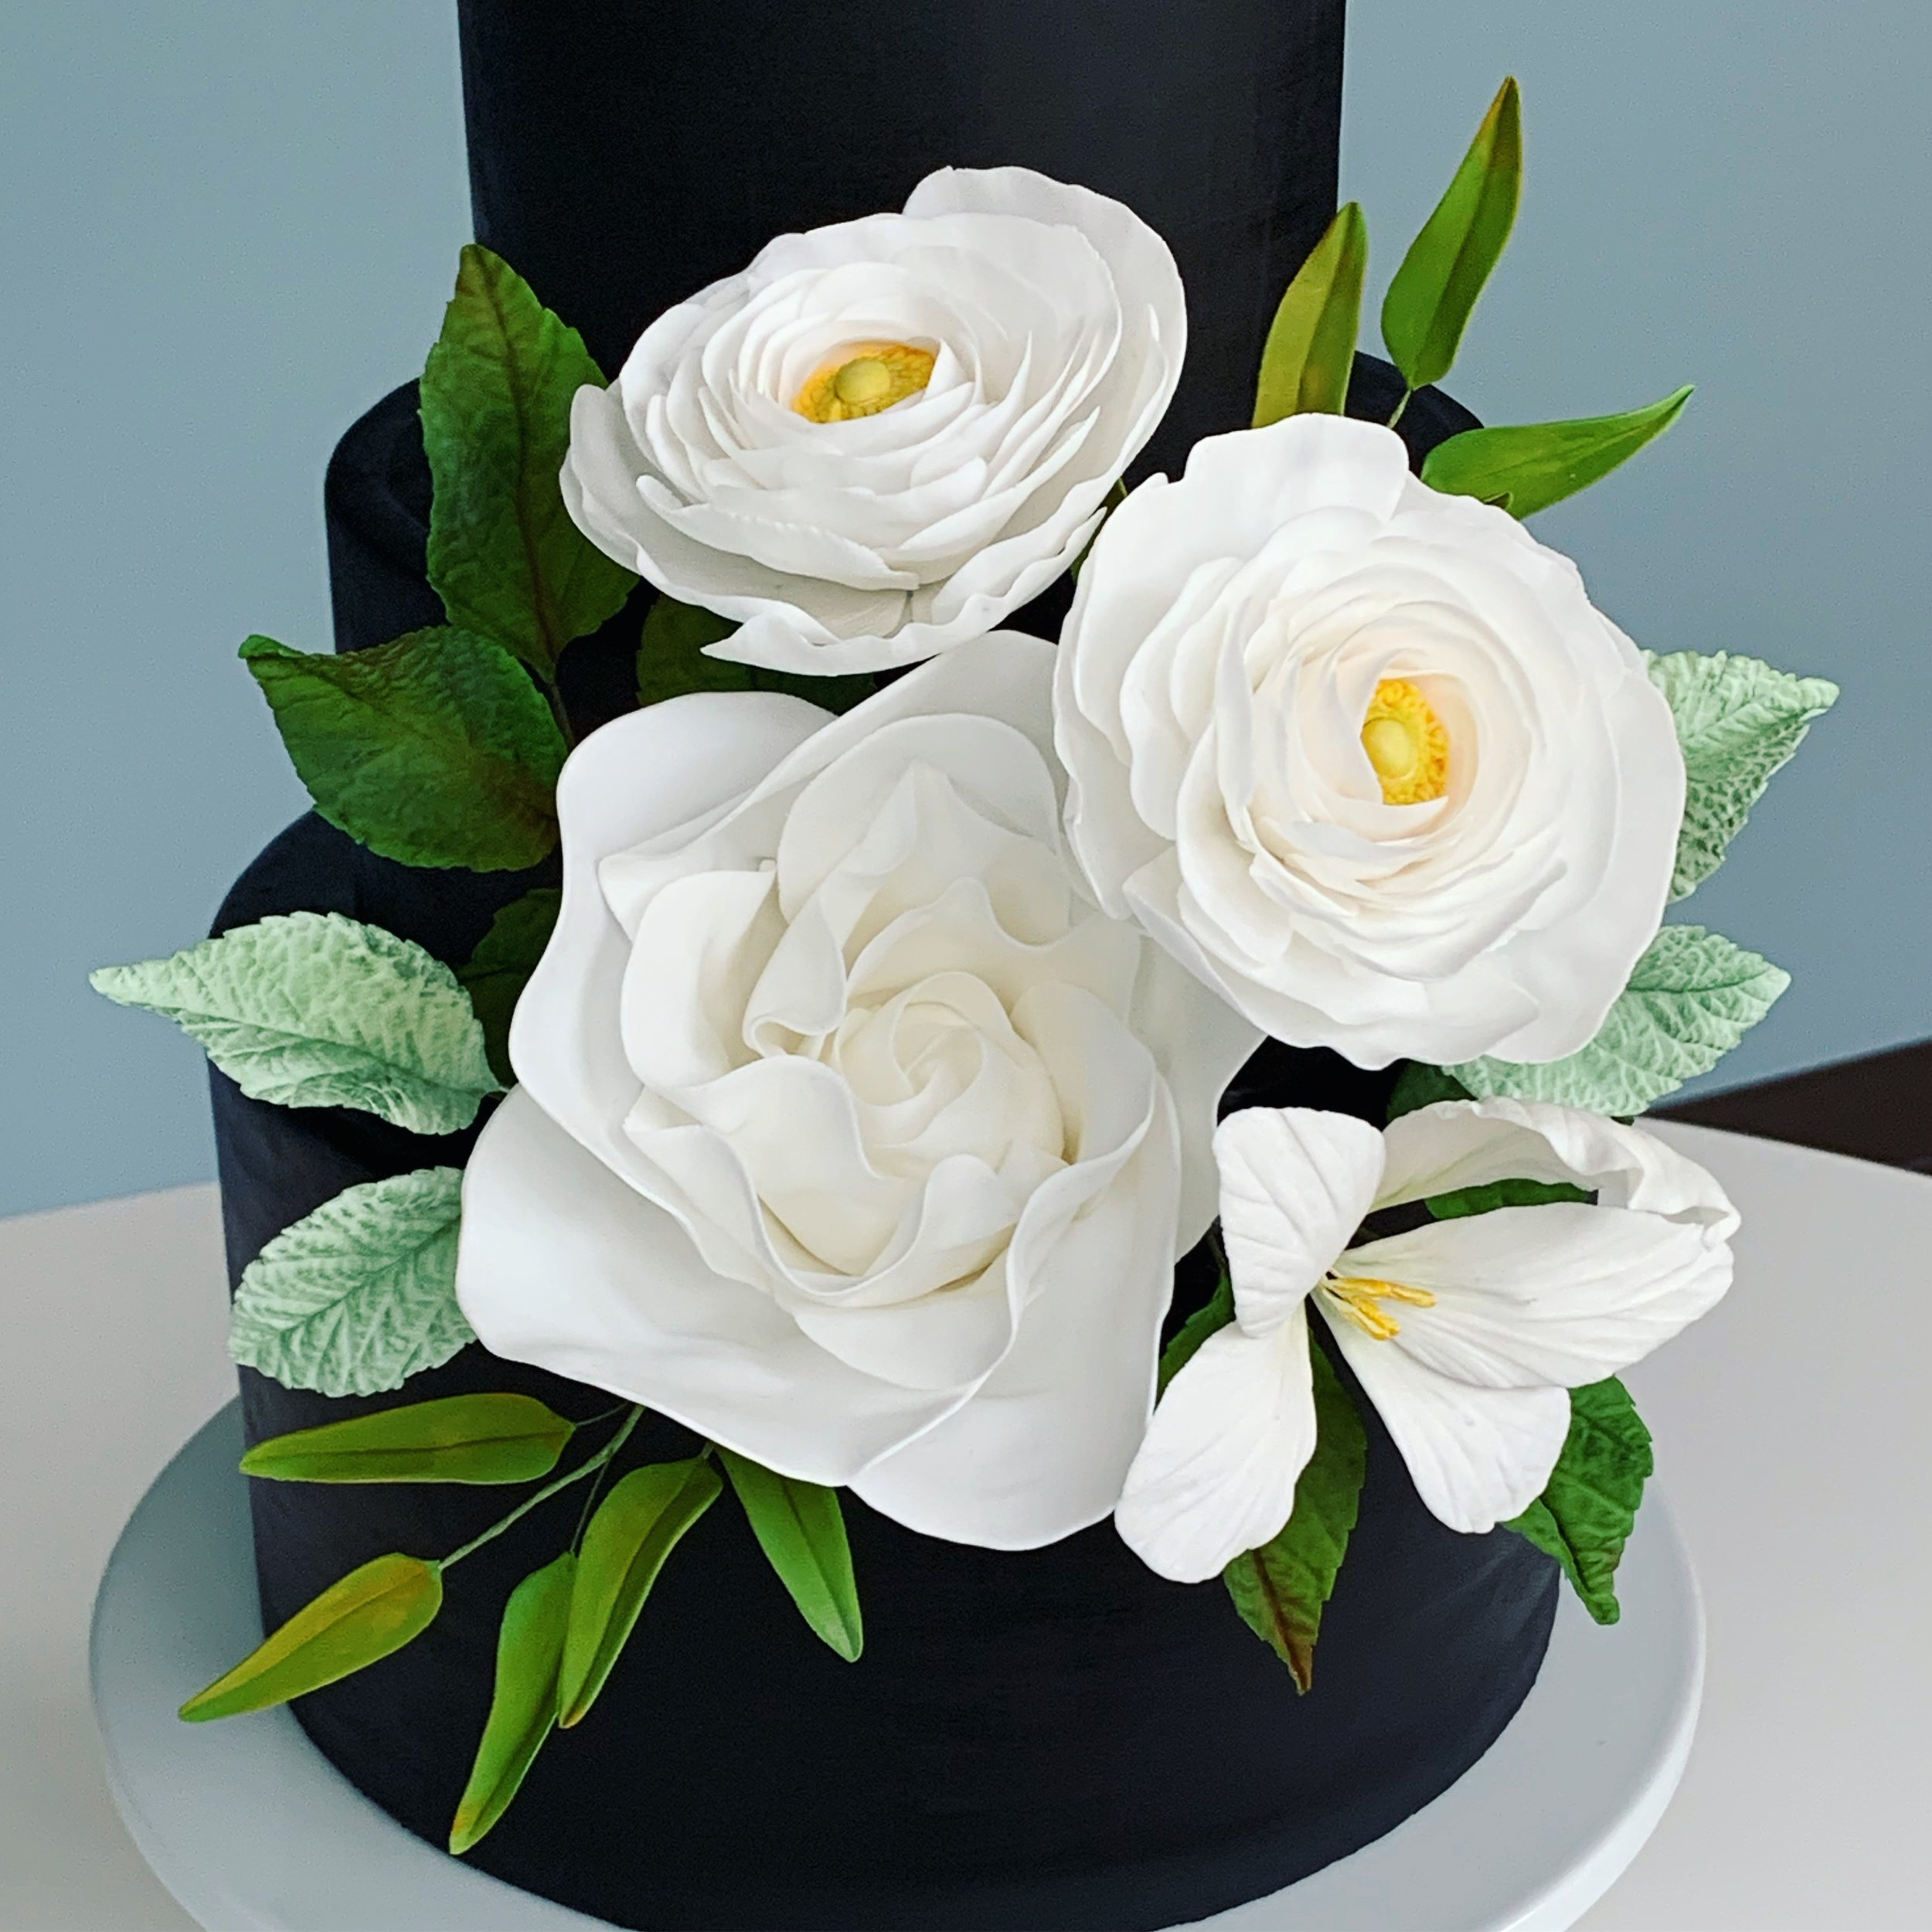 Sugar ranunculus, bauhinia, and modern rose with foliage. Image copyright Carla Schier.